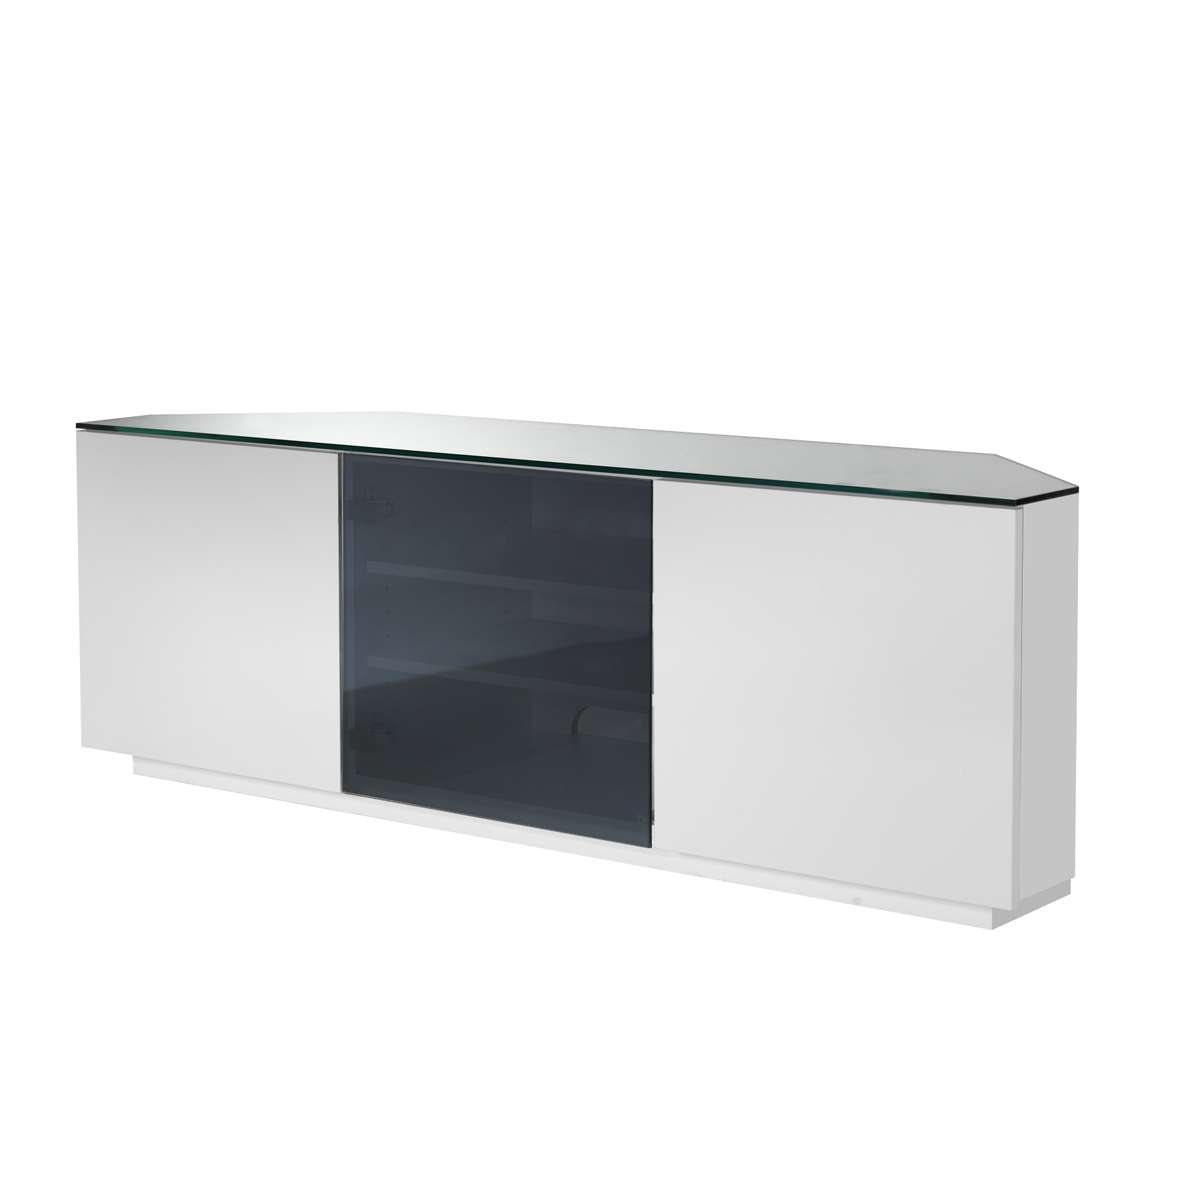 Ukcf Milan White Gloss & Black Glass Corner Tv Stand 150Cm Pertaining To Contemporary Corner Tv Stands (Gallery 7 of 15)